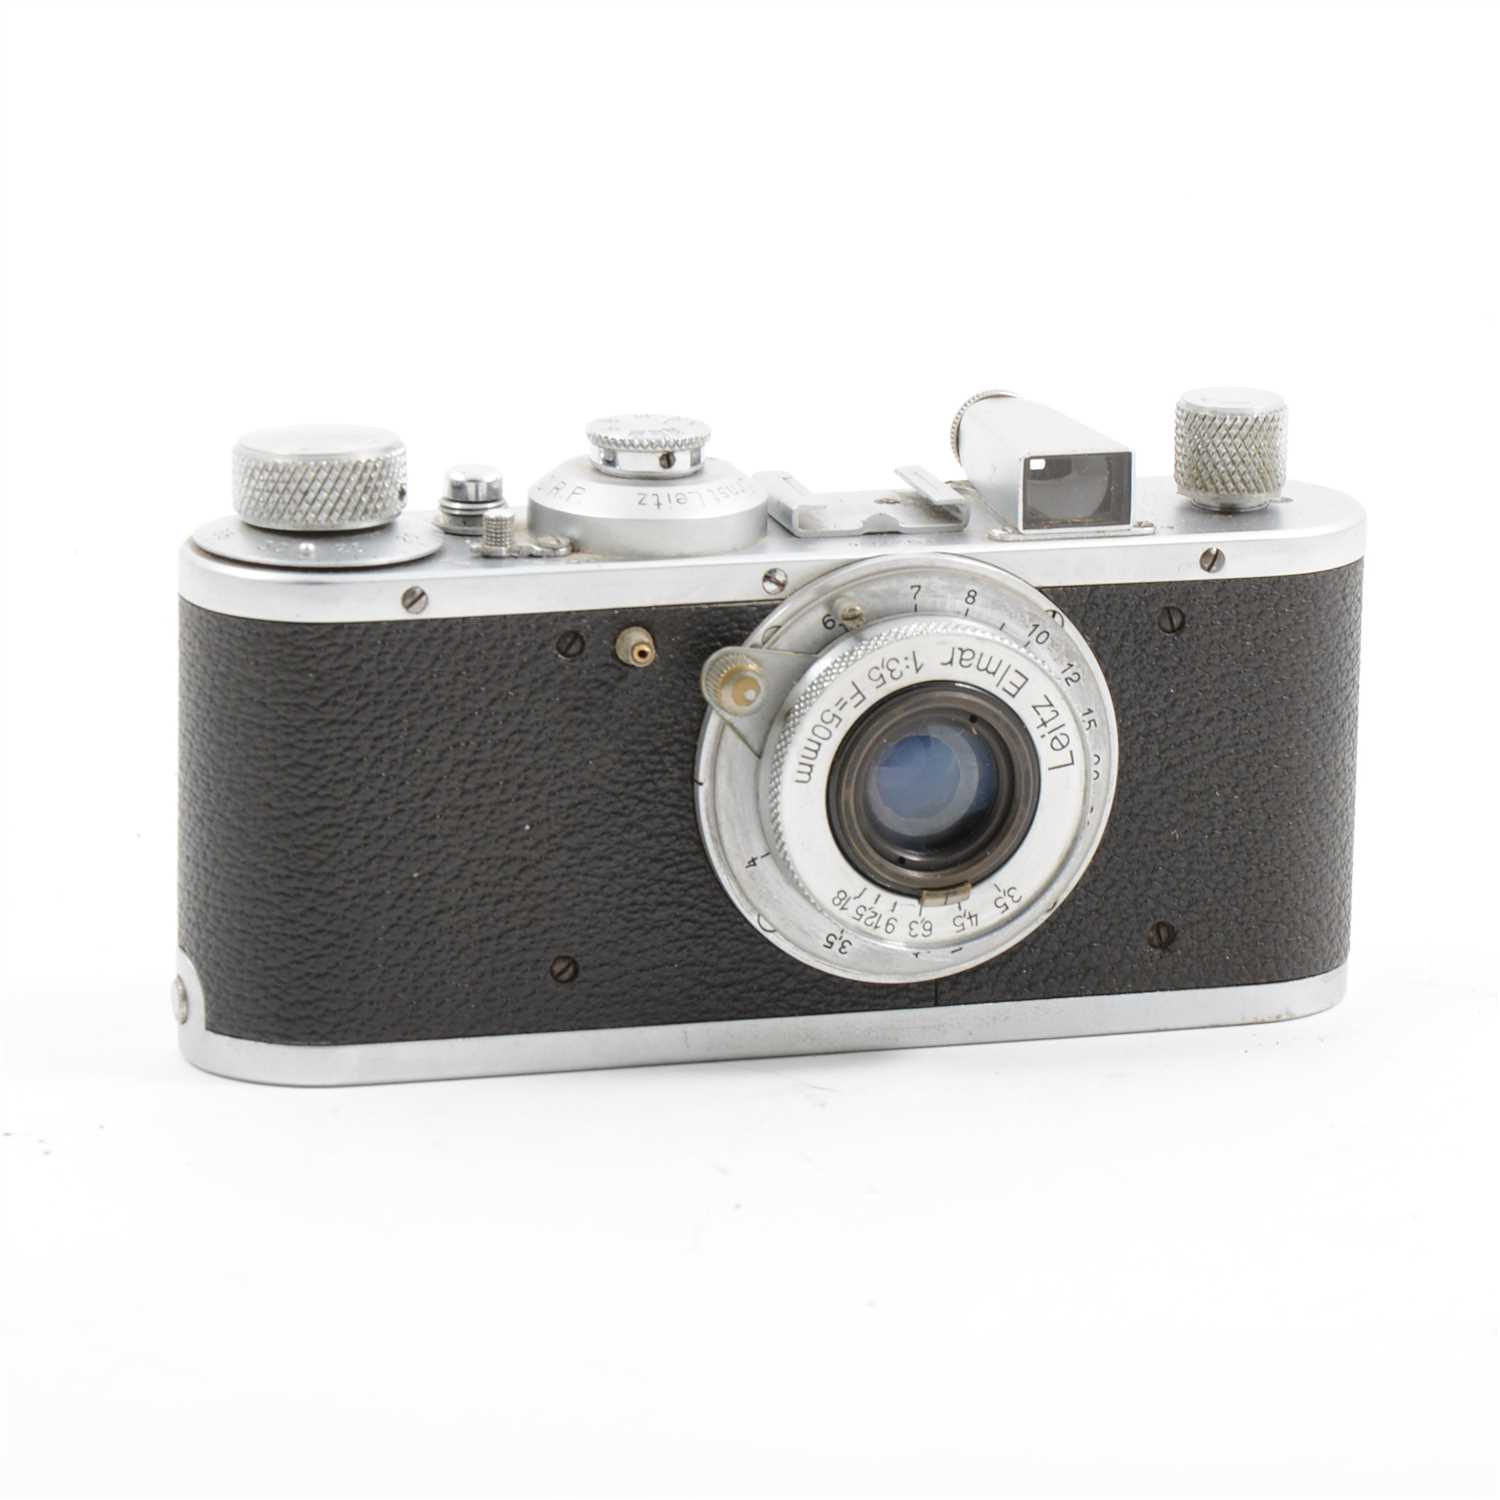 Lot 76-A Leica Standard model E camera, circa 1937, with Leitz Elmar 1:35 F/50mm lens